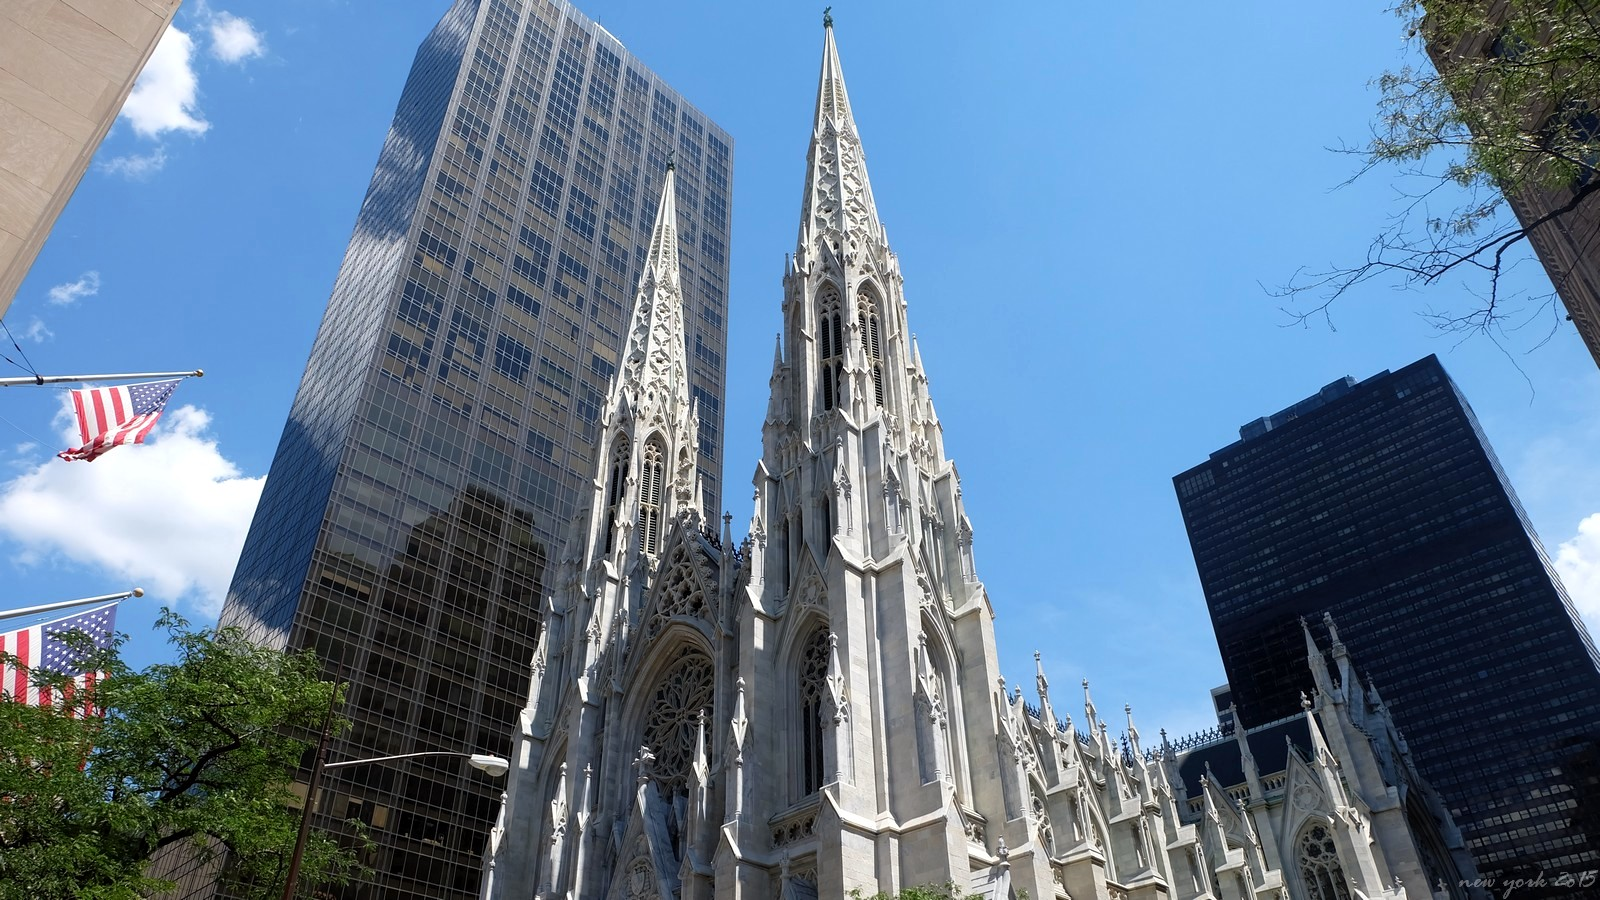 St. Patrick Cathedral, New York City, USA